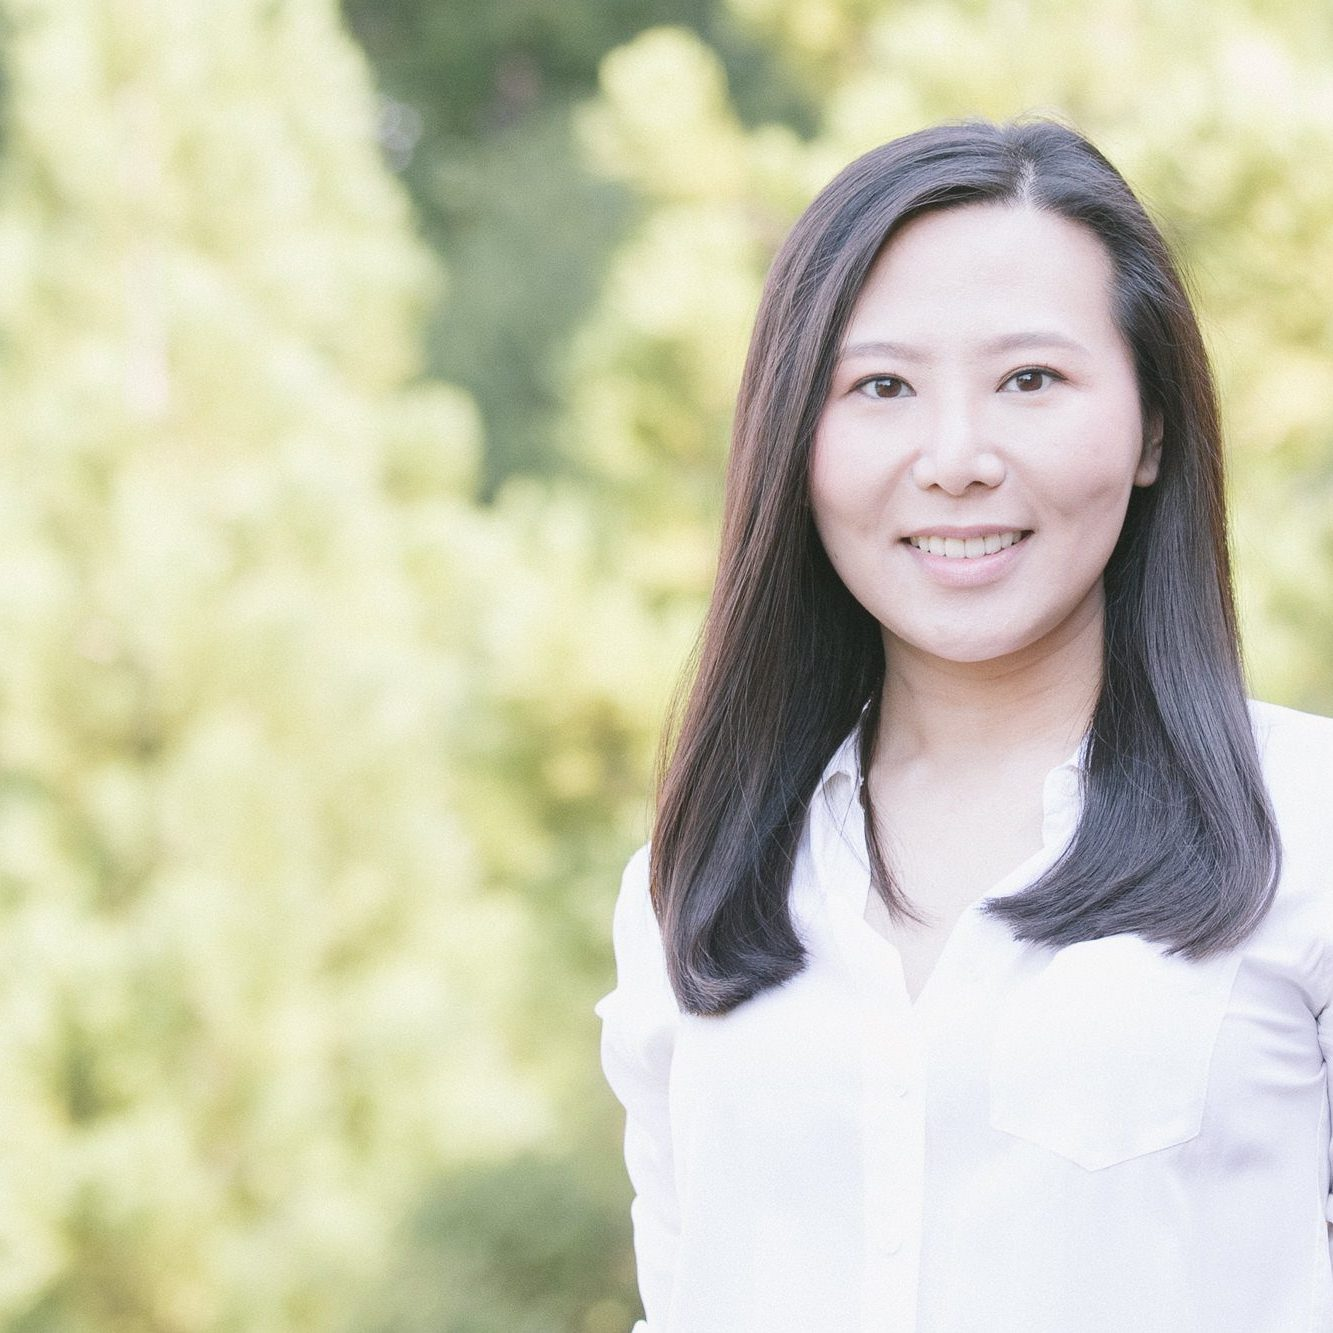 Smiling Chinese woman standing in front of out-of-focus trees